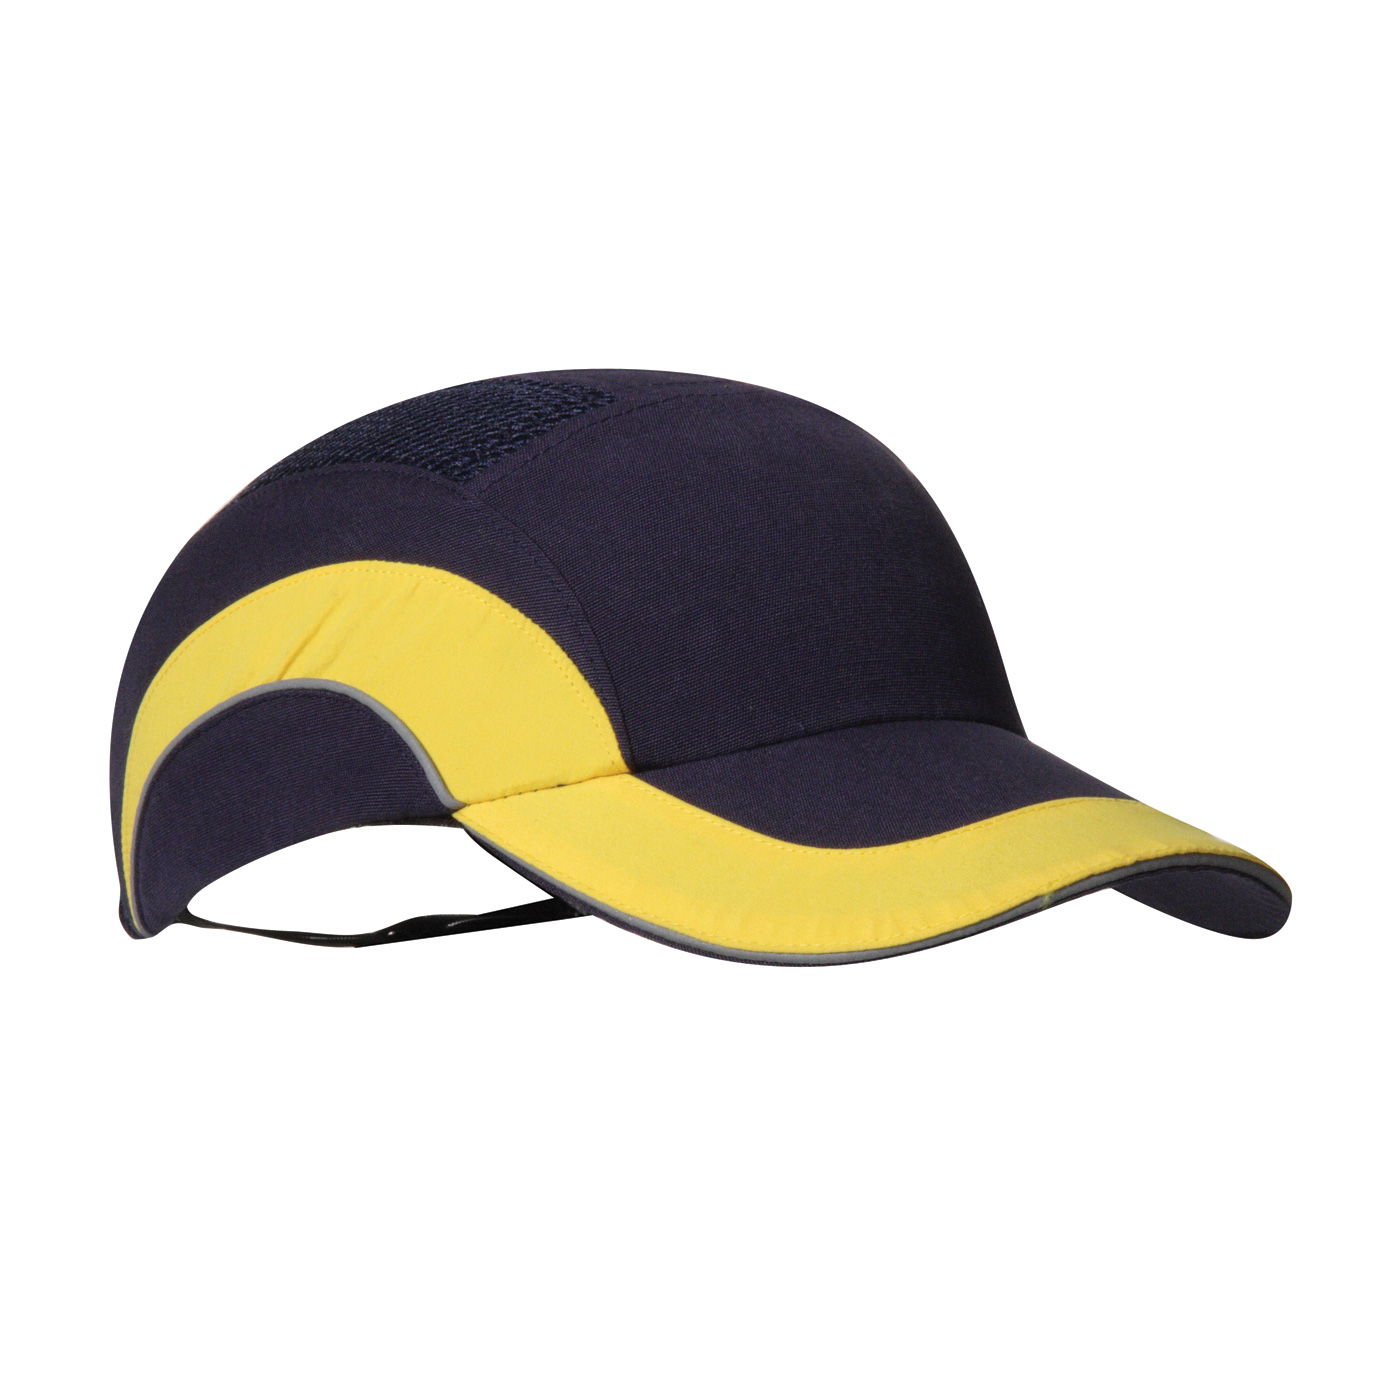 Baseball Style Bump Cap with HDPE Protective Liner and Adjustable Back, Yellow, OS